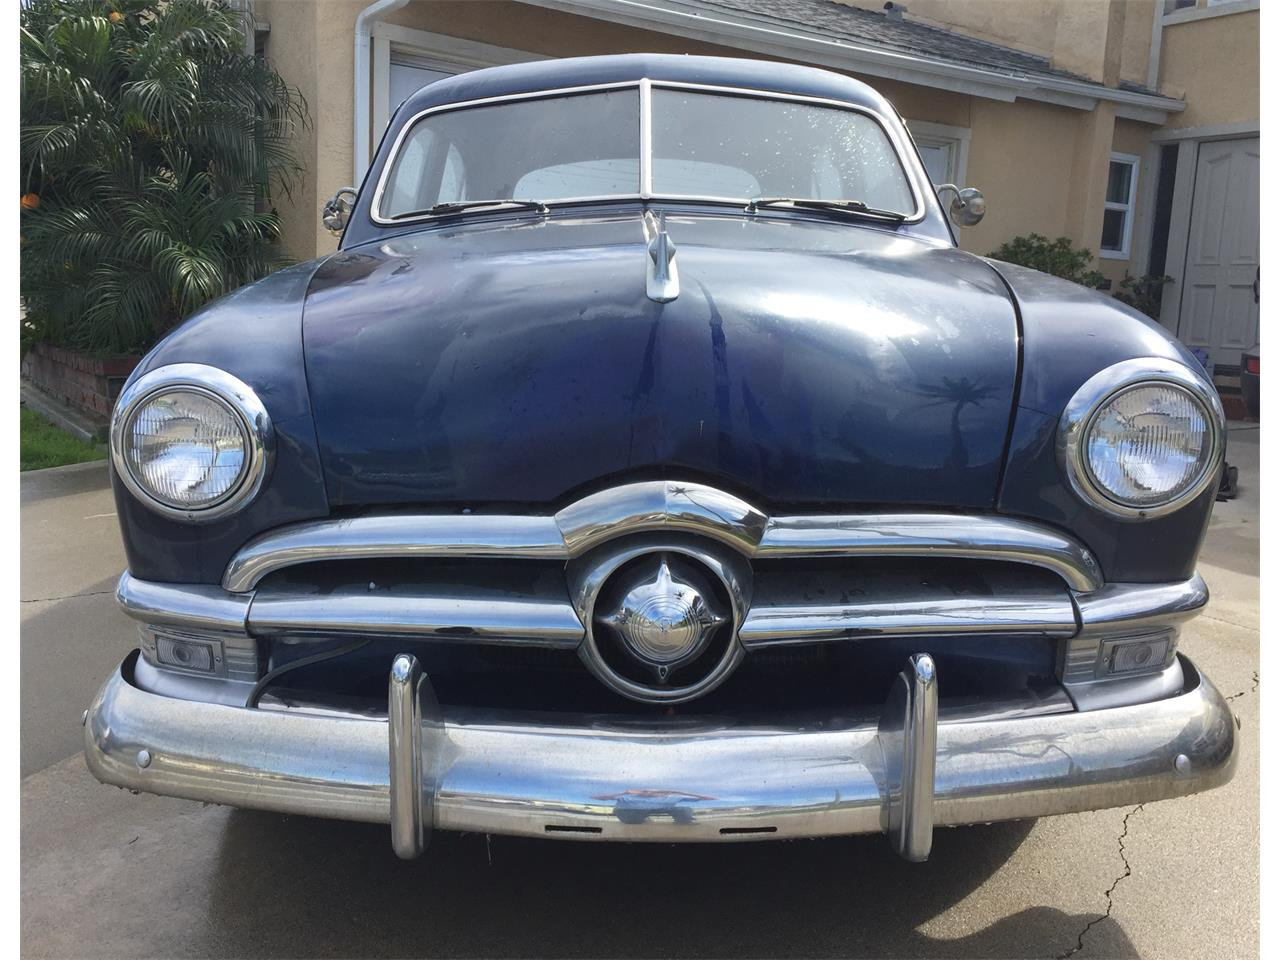 1950 Ford 2-Dr Sedan (CC-1321181) for sale in Huntington Beach, California